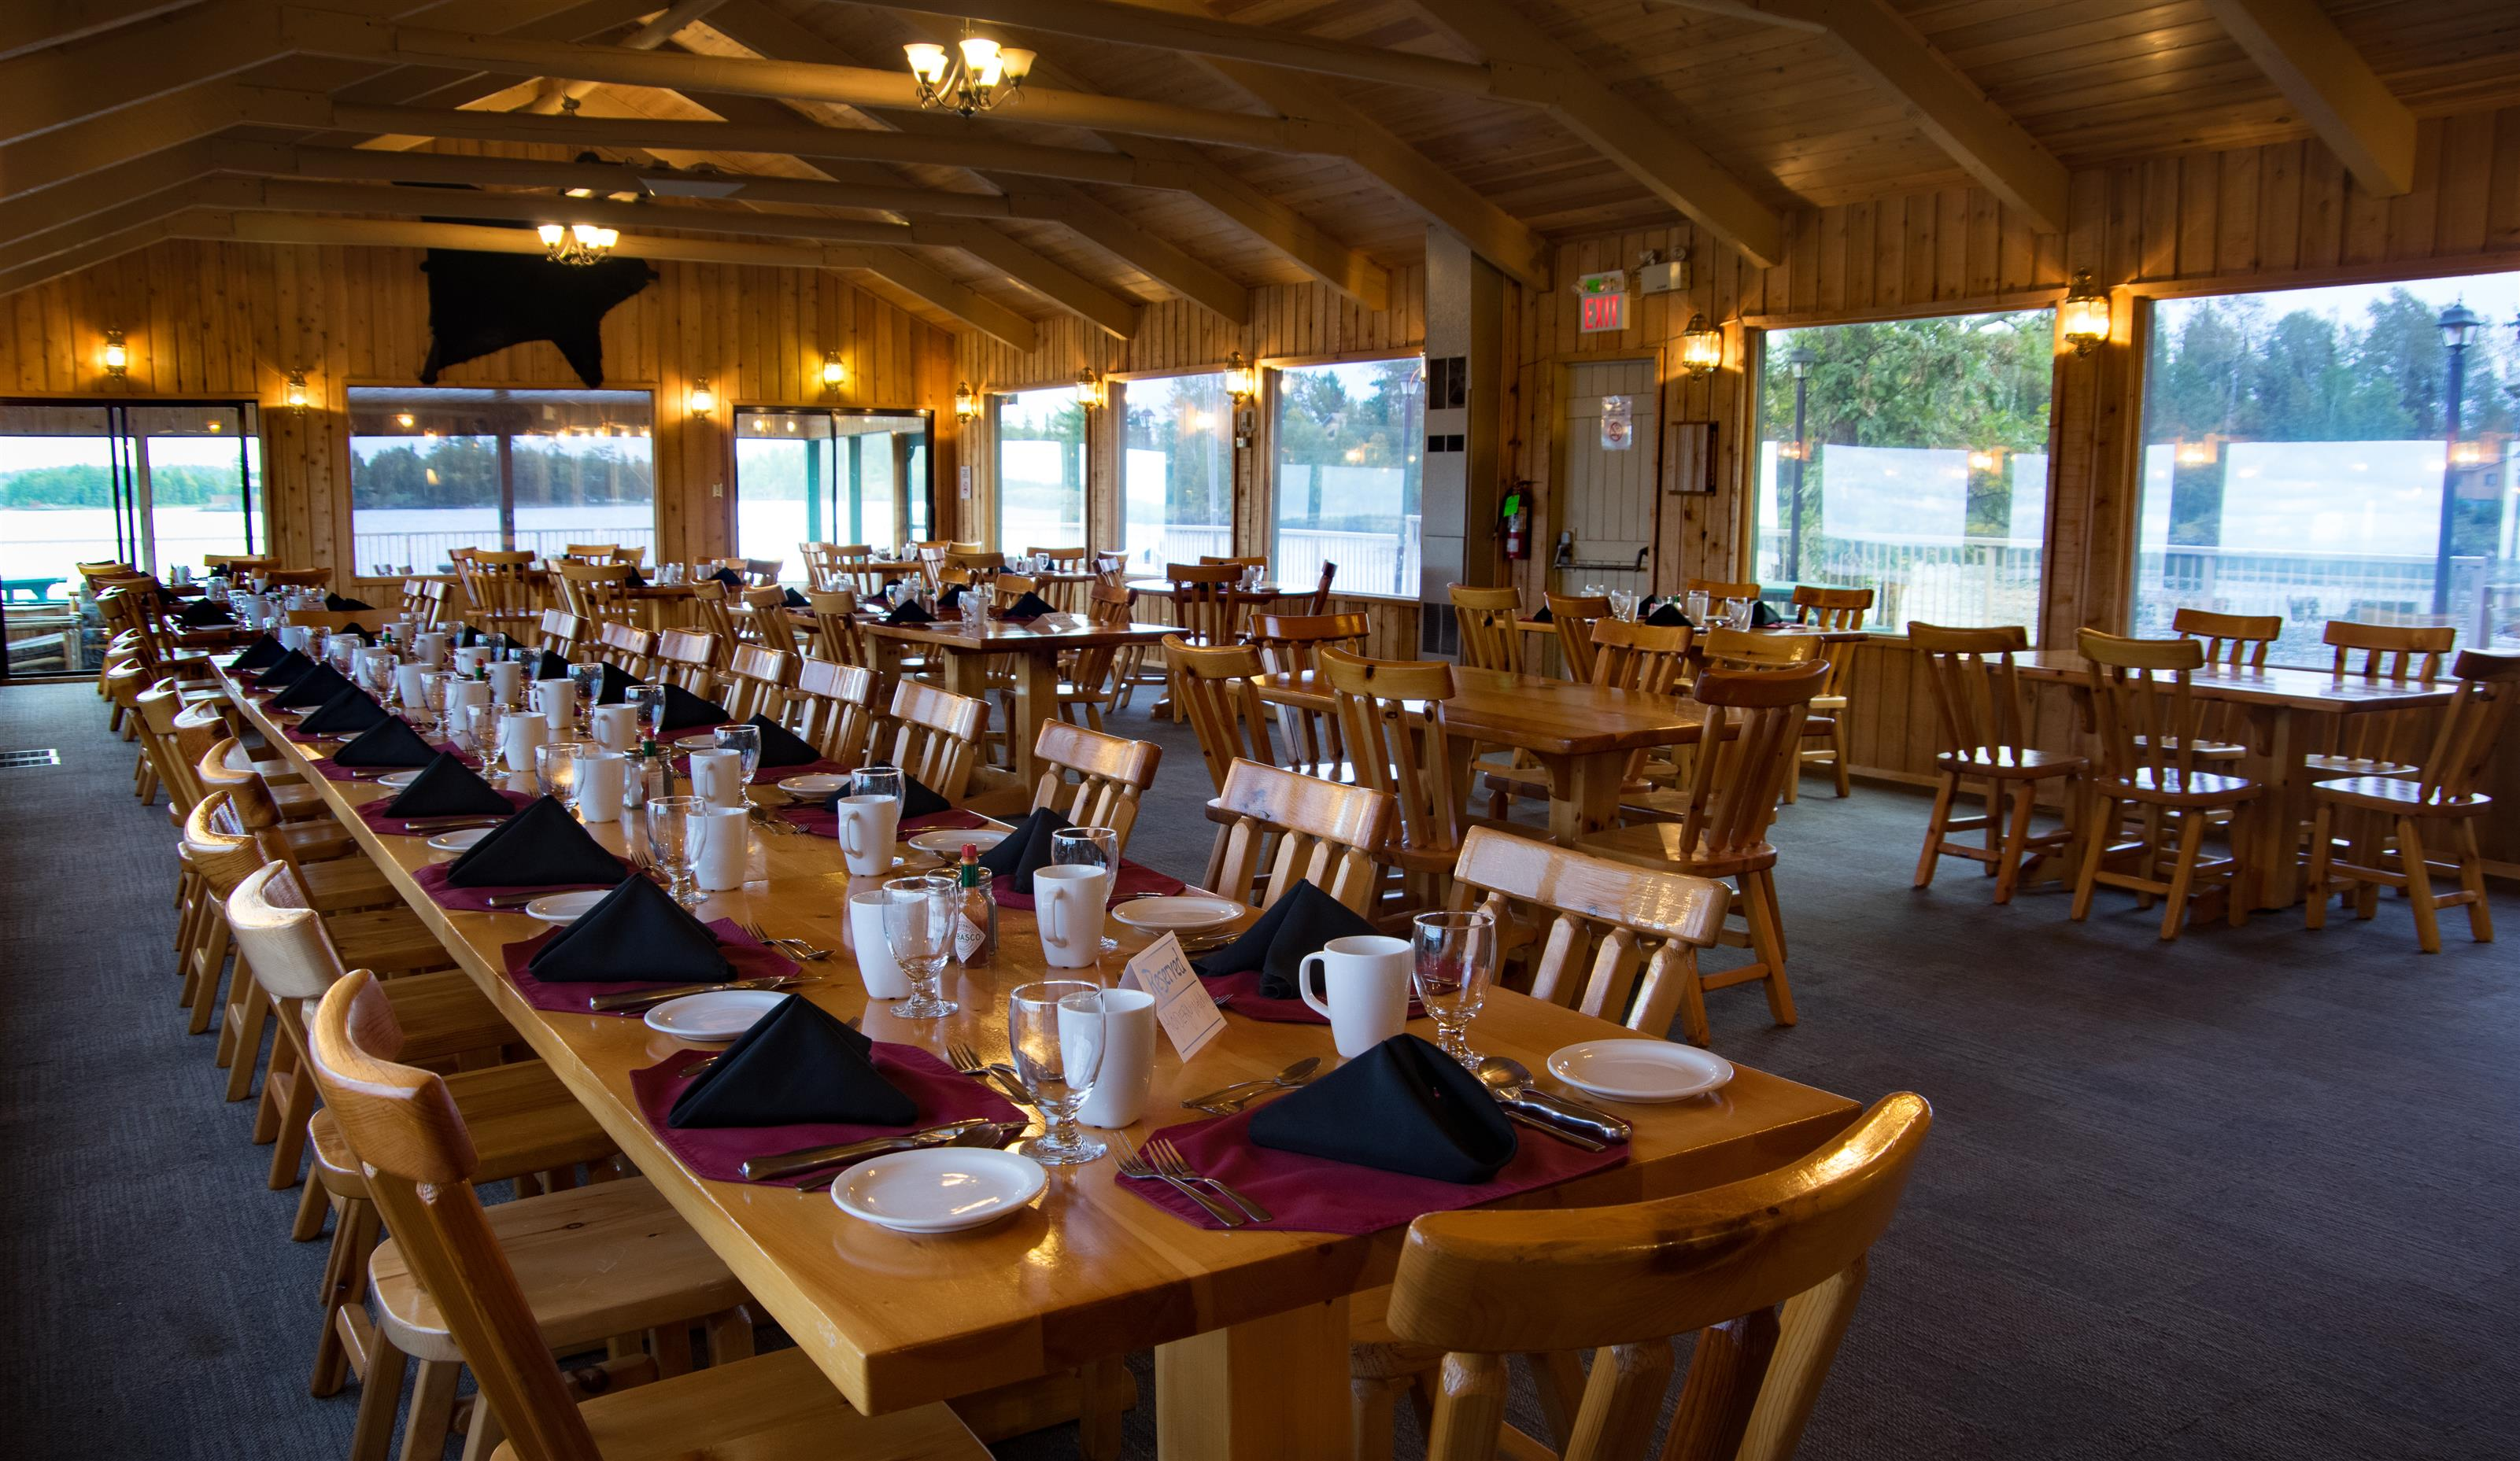 inside view of the dining area of the lodge